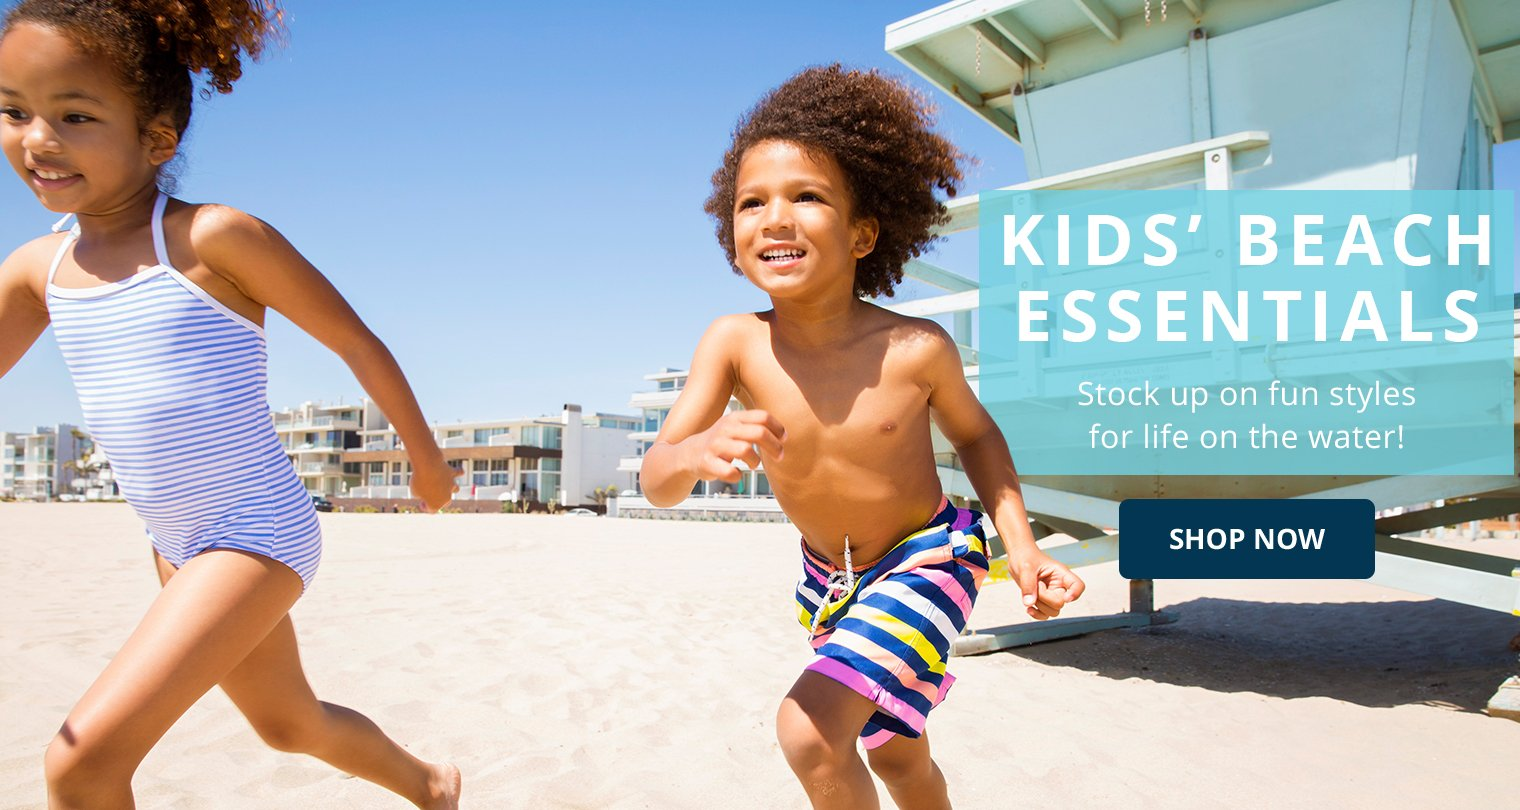 Kids' Beach Essentials. Stock up on fun styles for life on the water! Shop Now.